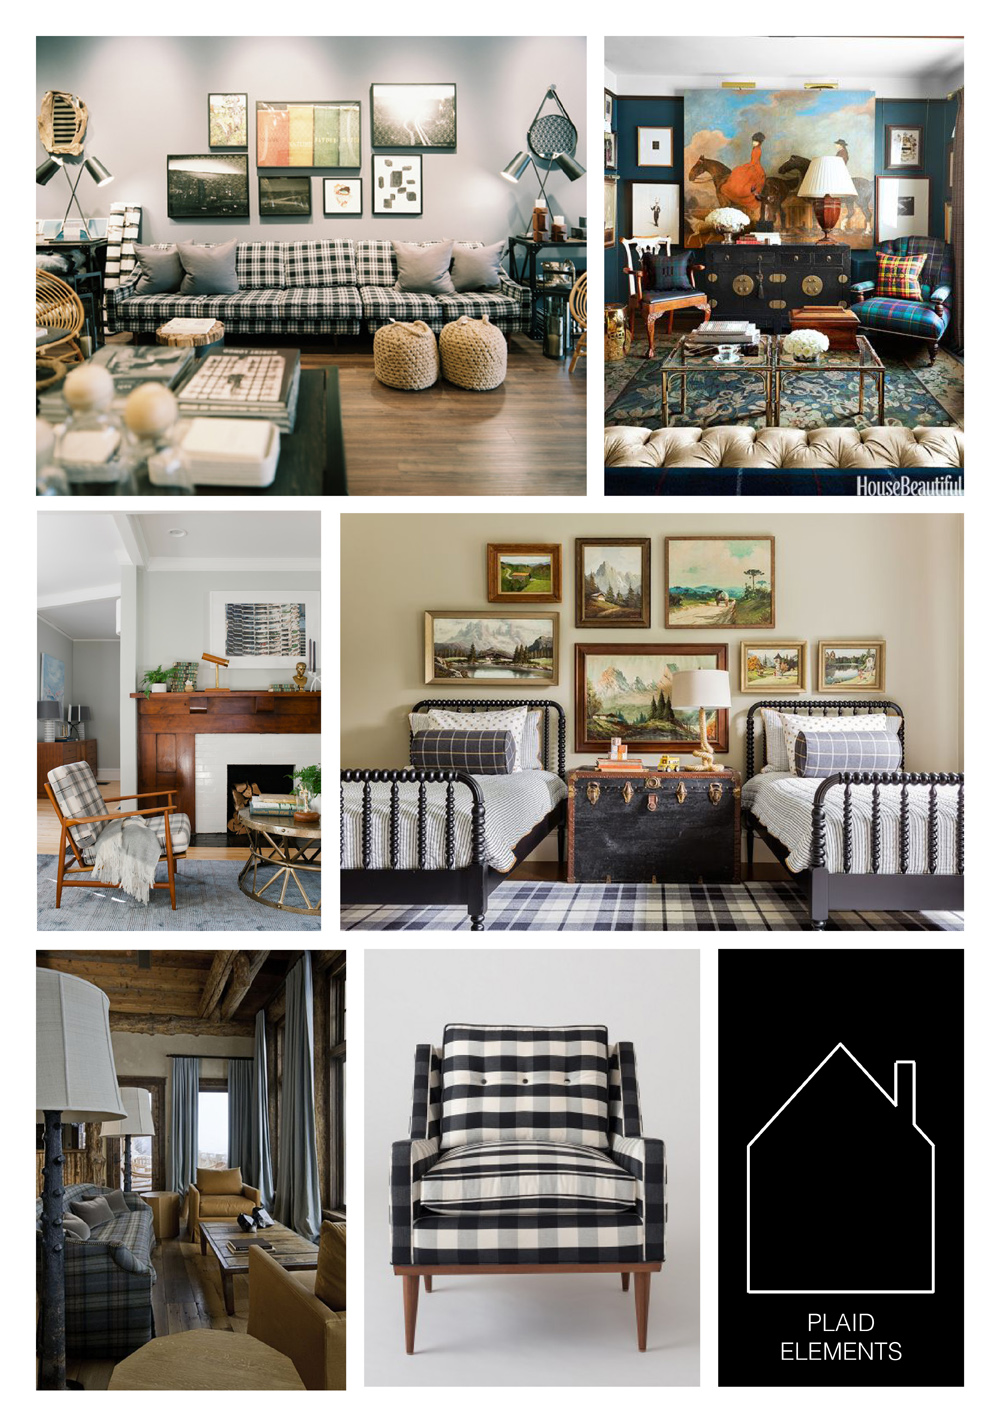 from top left - plaid couch via  Lonny  - via  House Beautiful  - design by  Emily Henderson  - design by  Sabbe Interiors  - via  Birch + Bird  - Jack chair by  Schoolhouse Electric